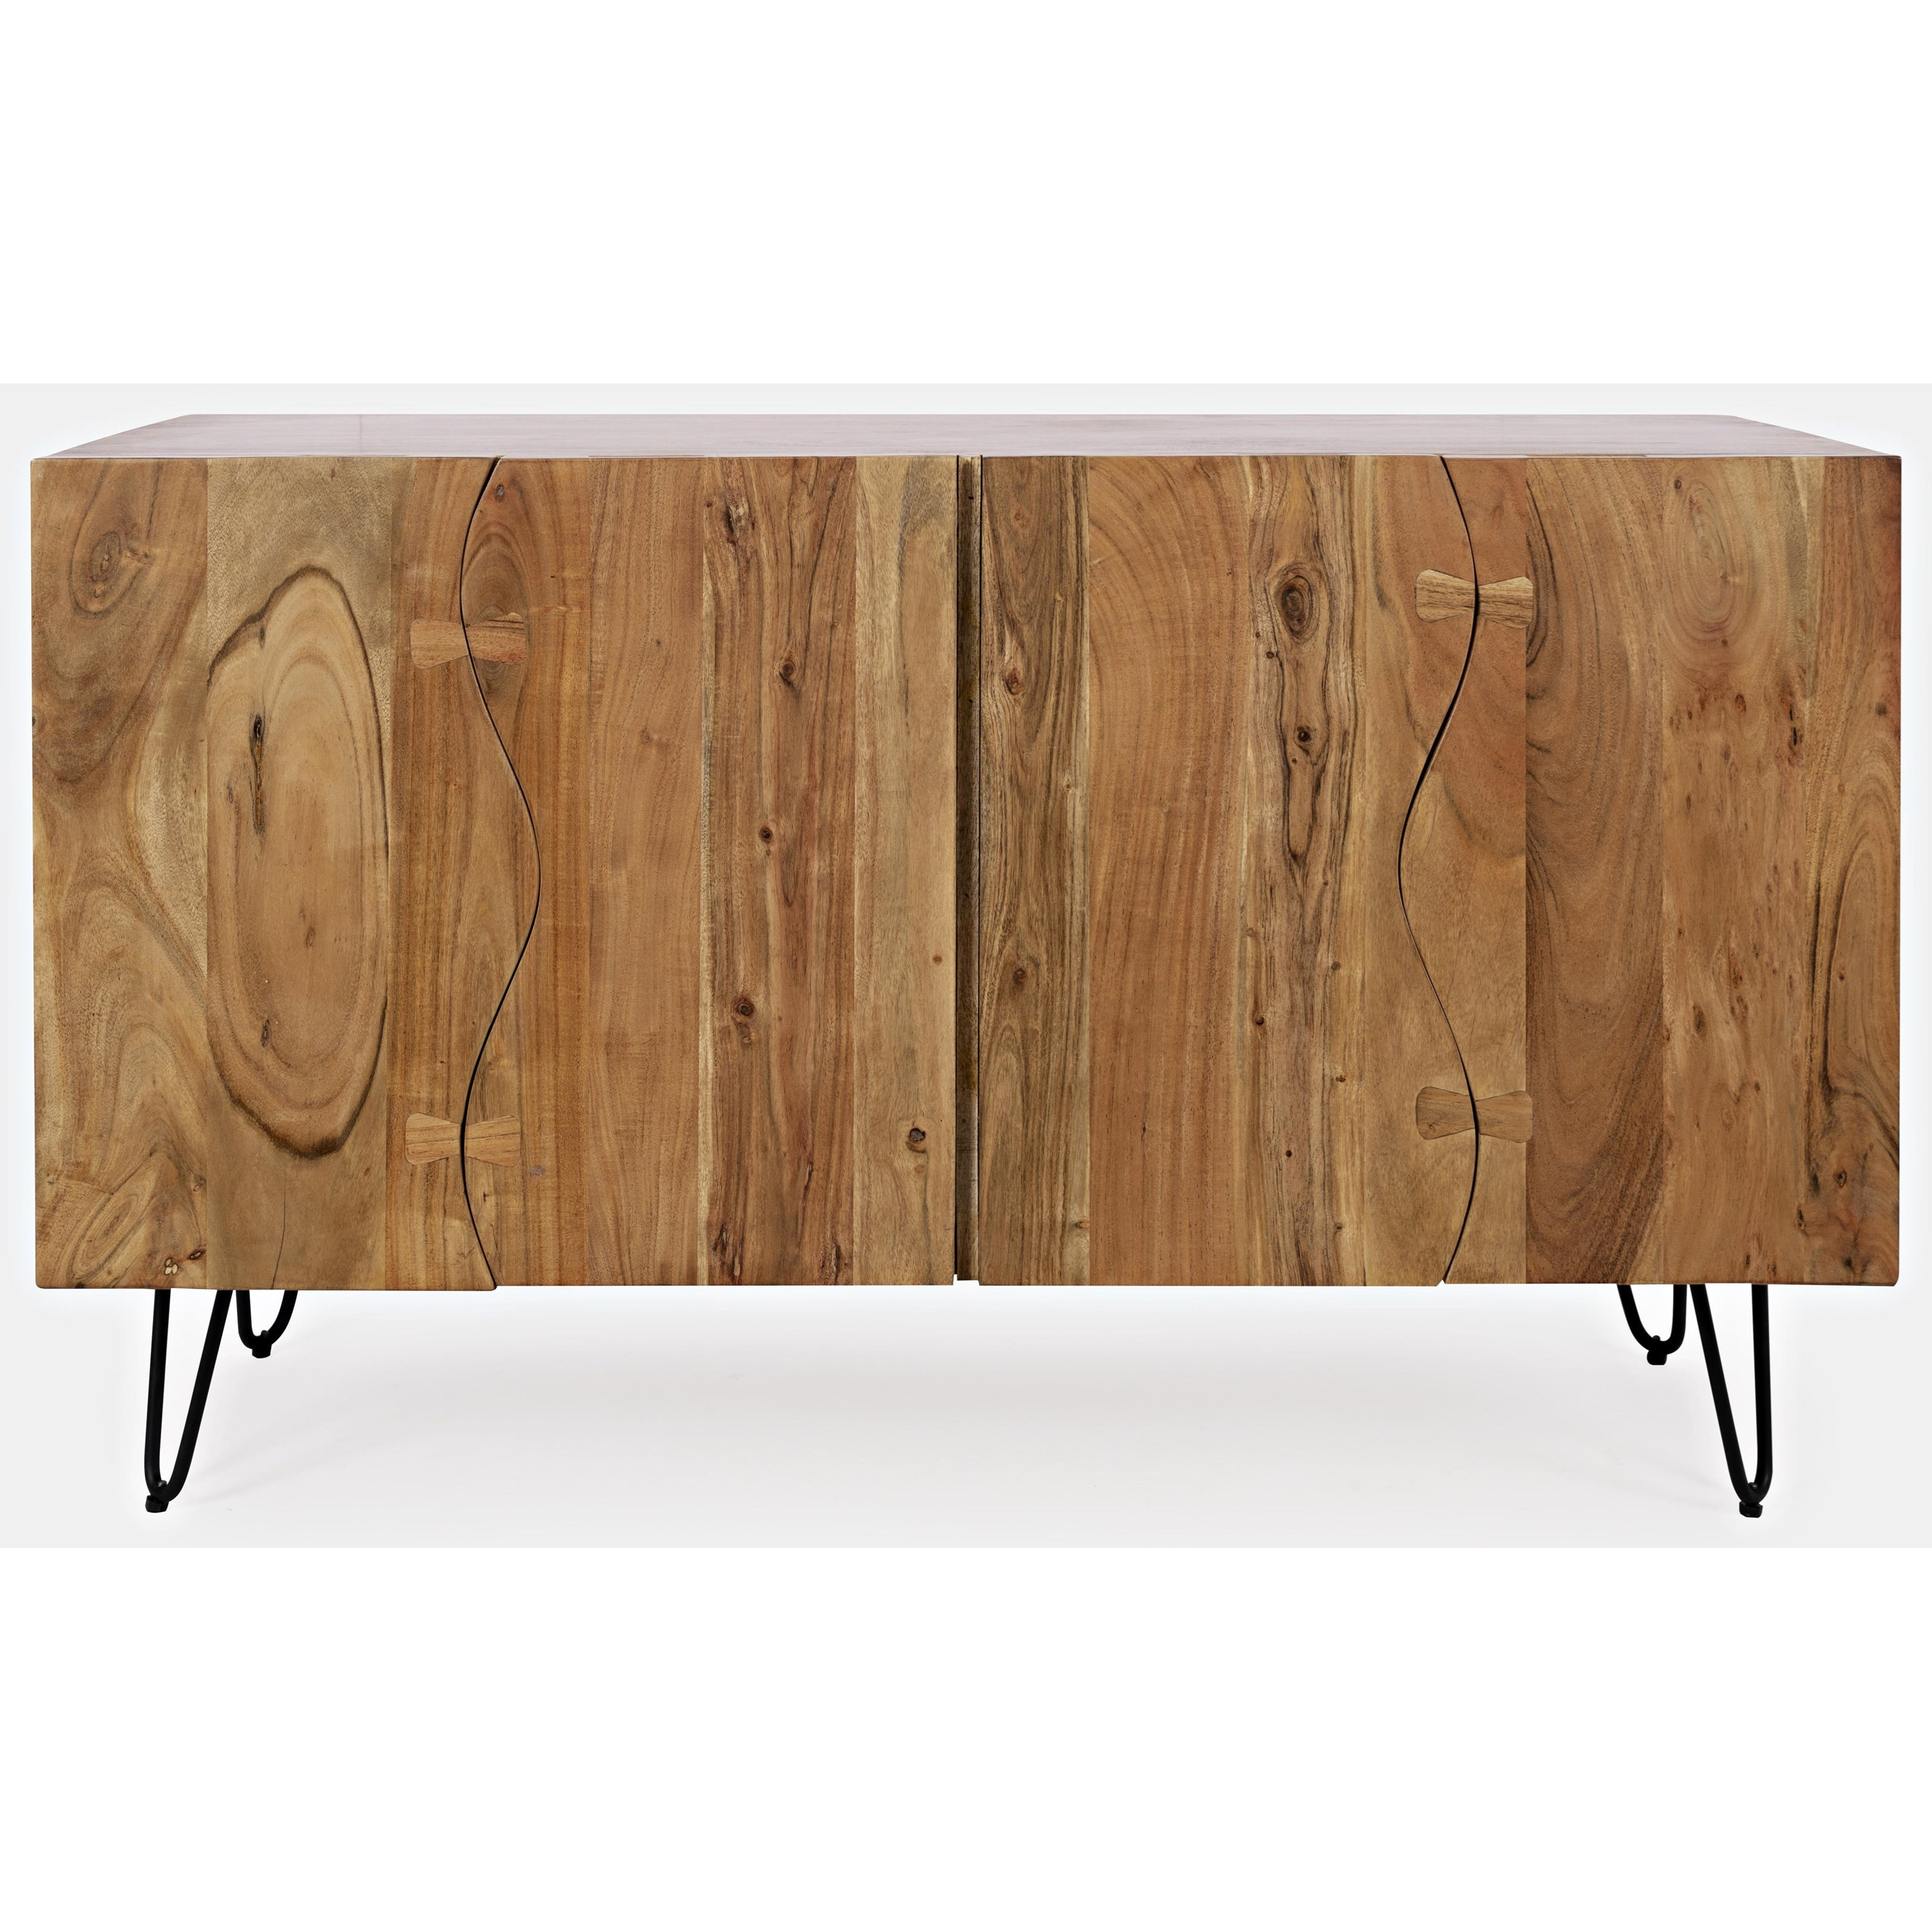 Nature's Edge Sideboard with 4 Live Edge Doors by Jofran at Simply Home by Lindy's